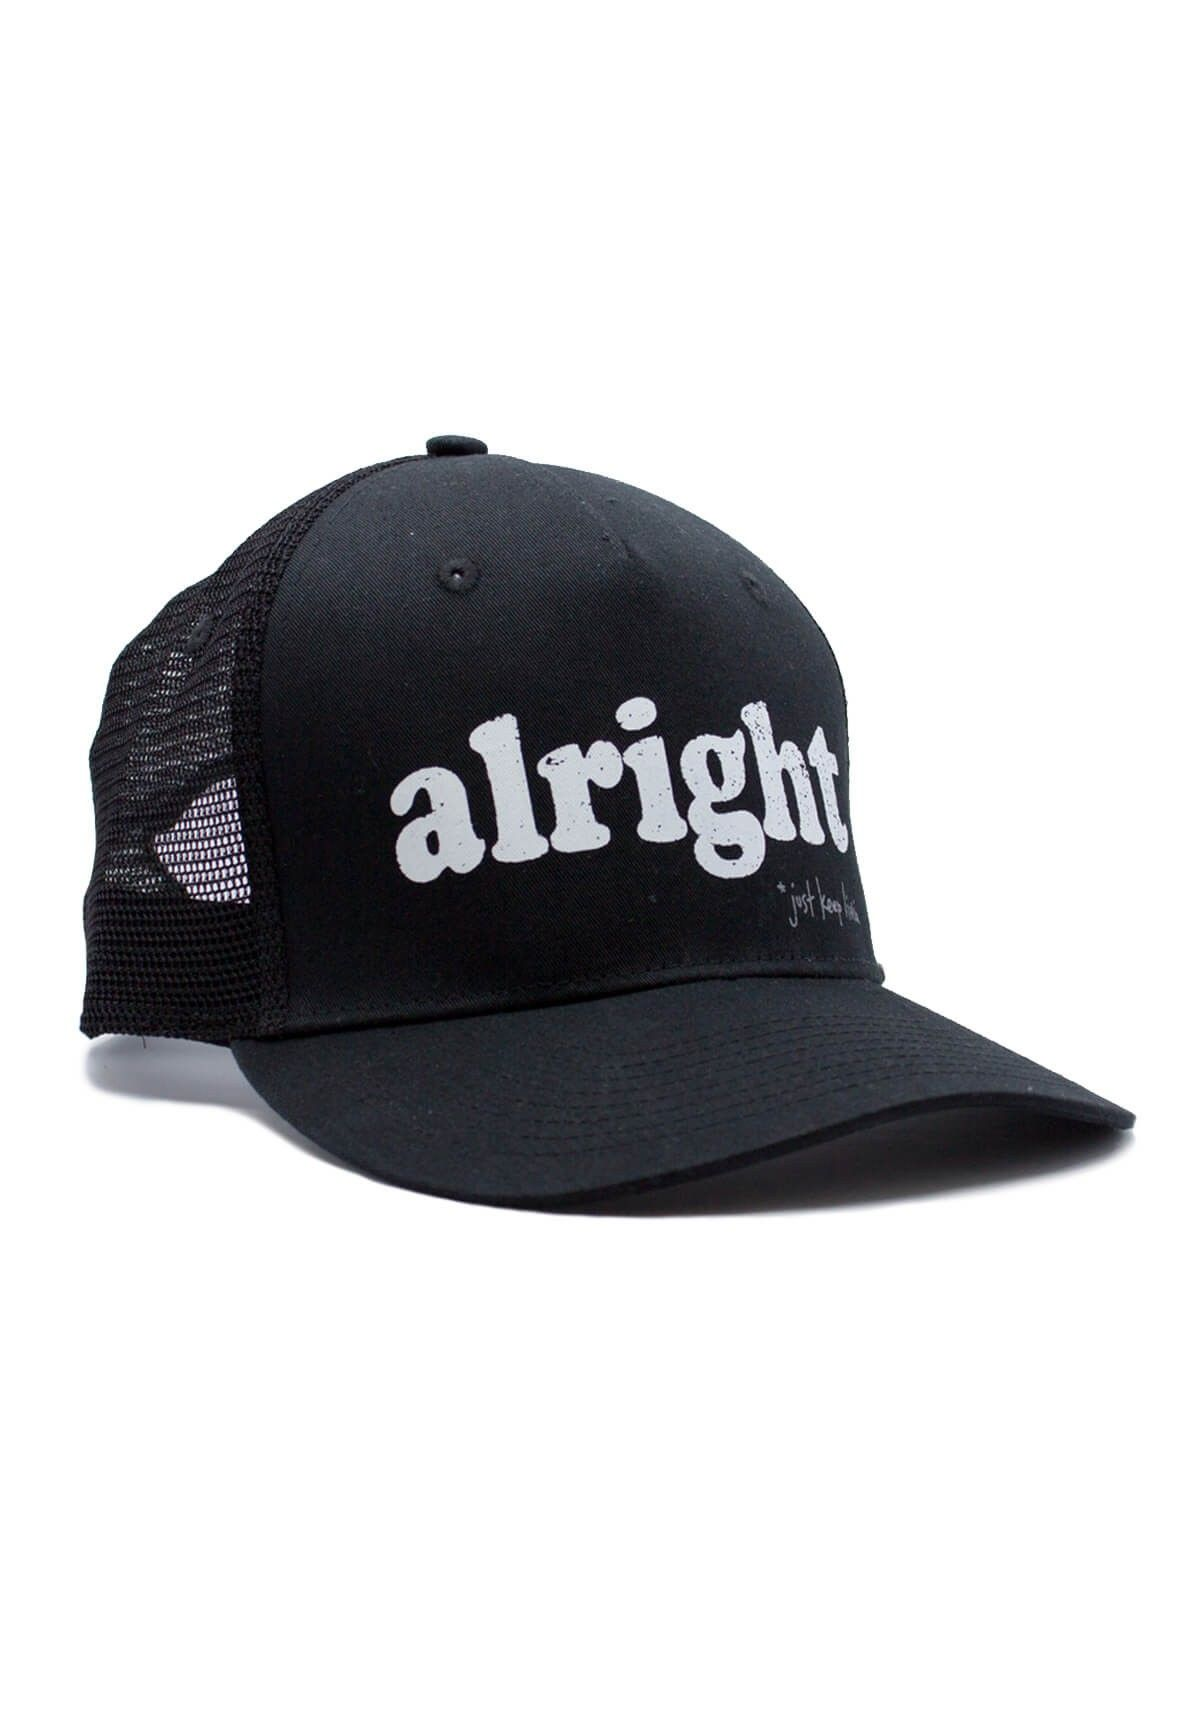 alright trucker hat miscellaneous